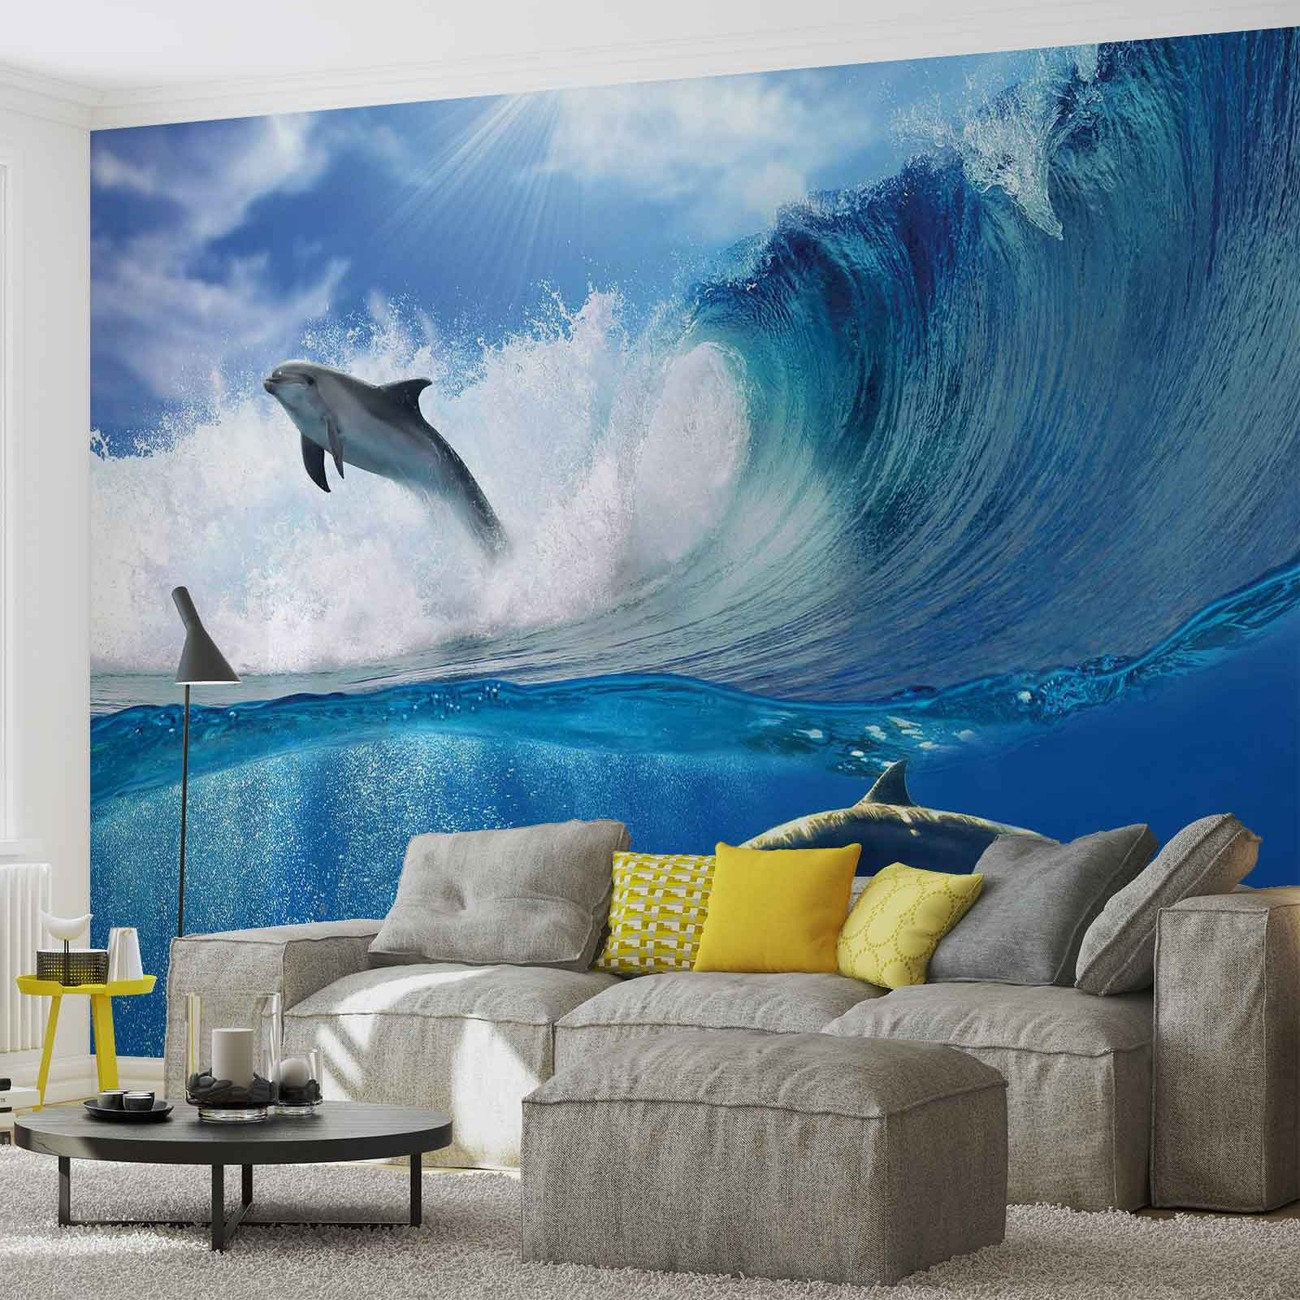 Dolphins sea wave nature wall paper mural buy at for Dolphin wall mural